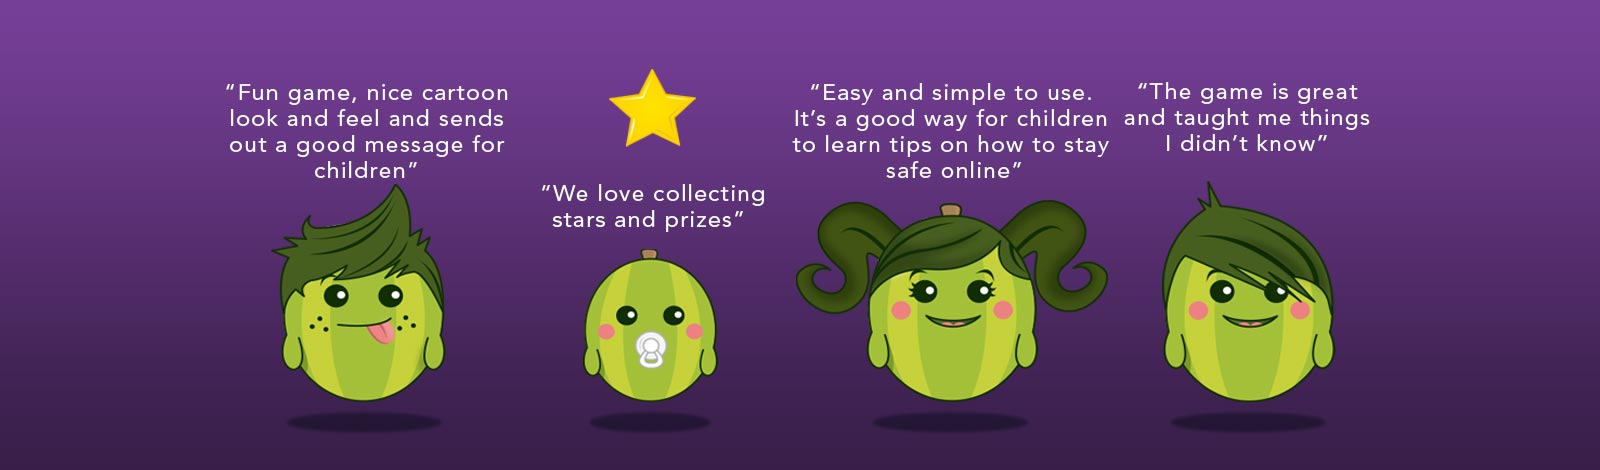 Gooseberry Family – Learning Online Safety Through Gamification